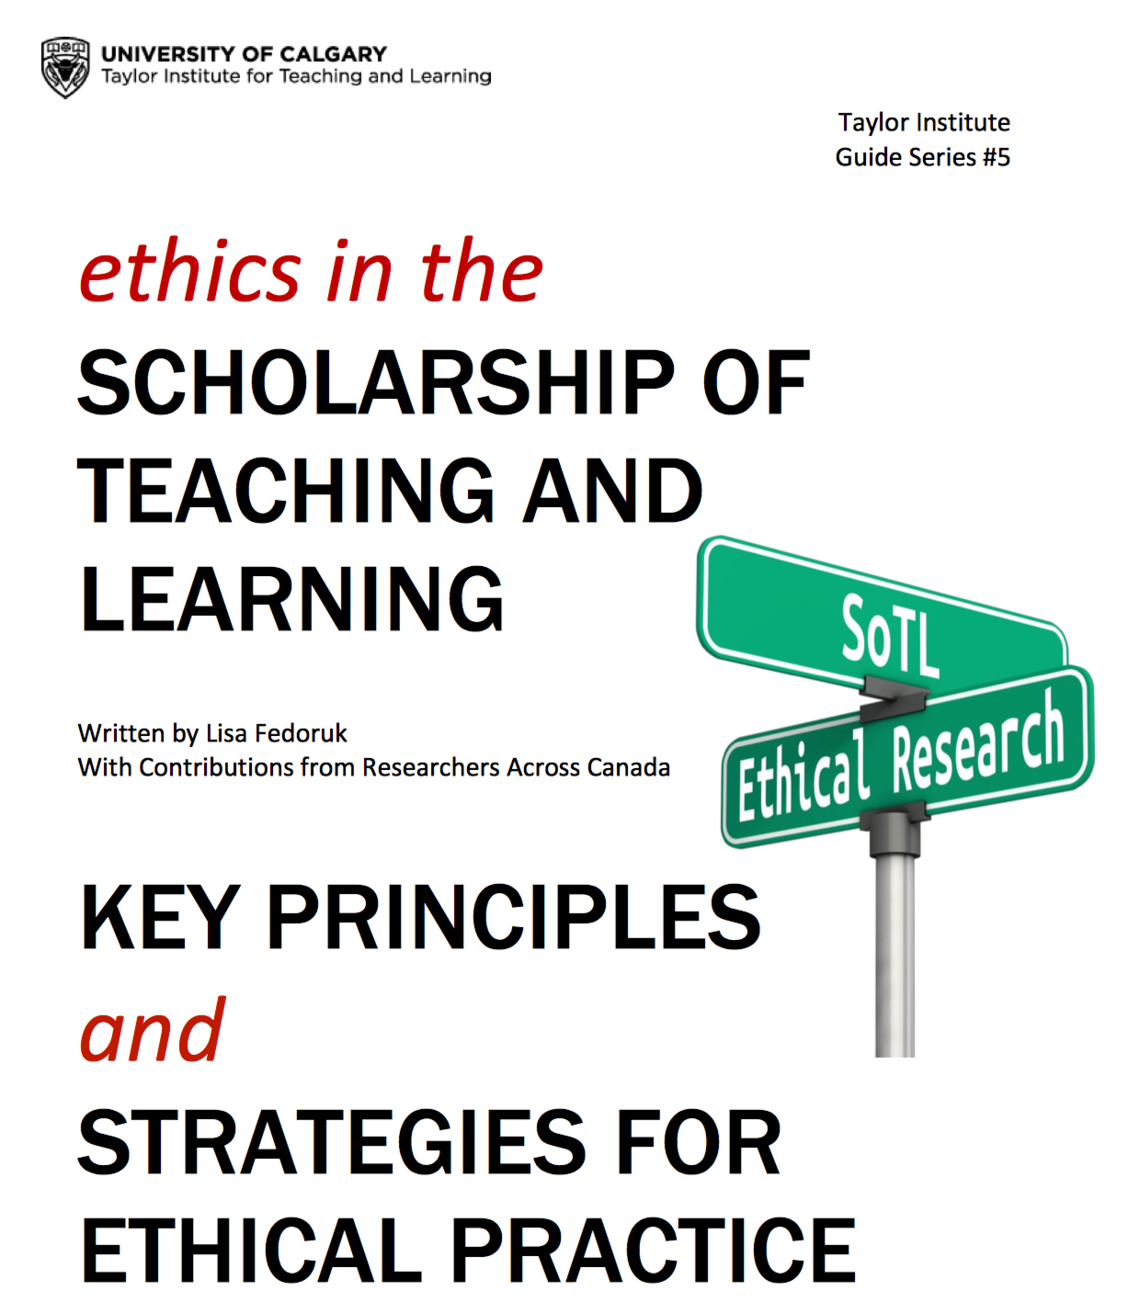 Ethics in The Scholarship of Teaching and Learning